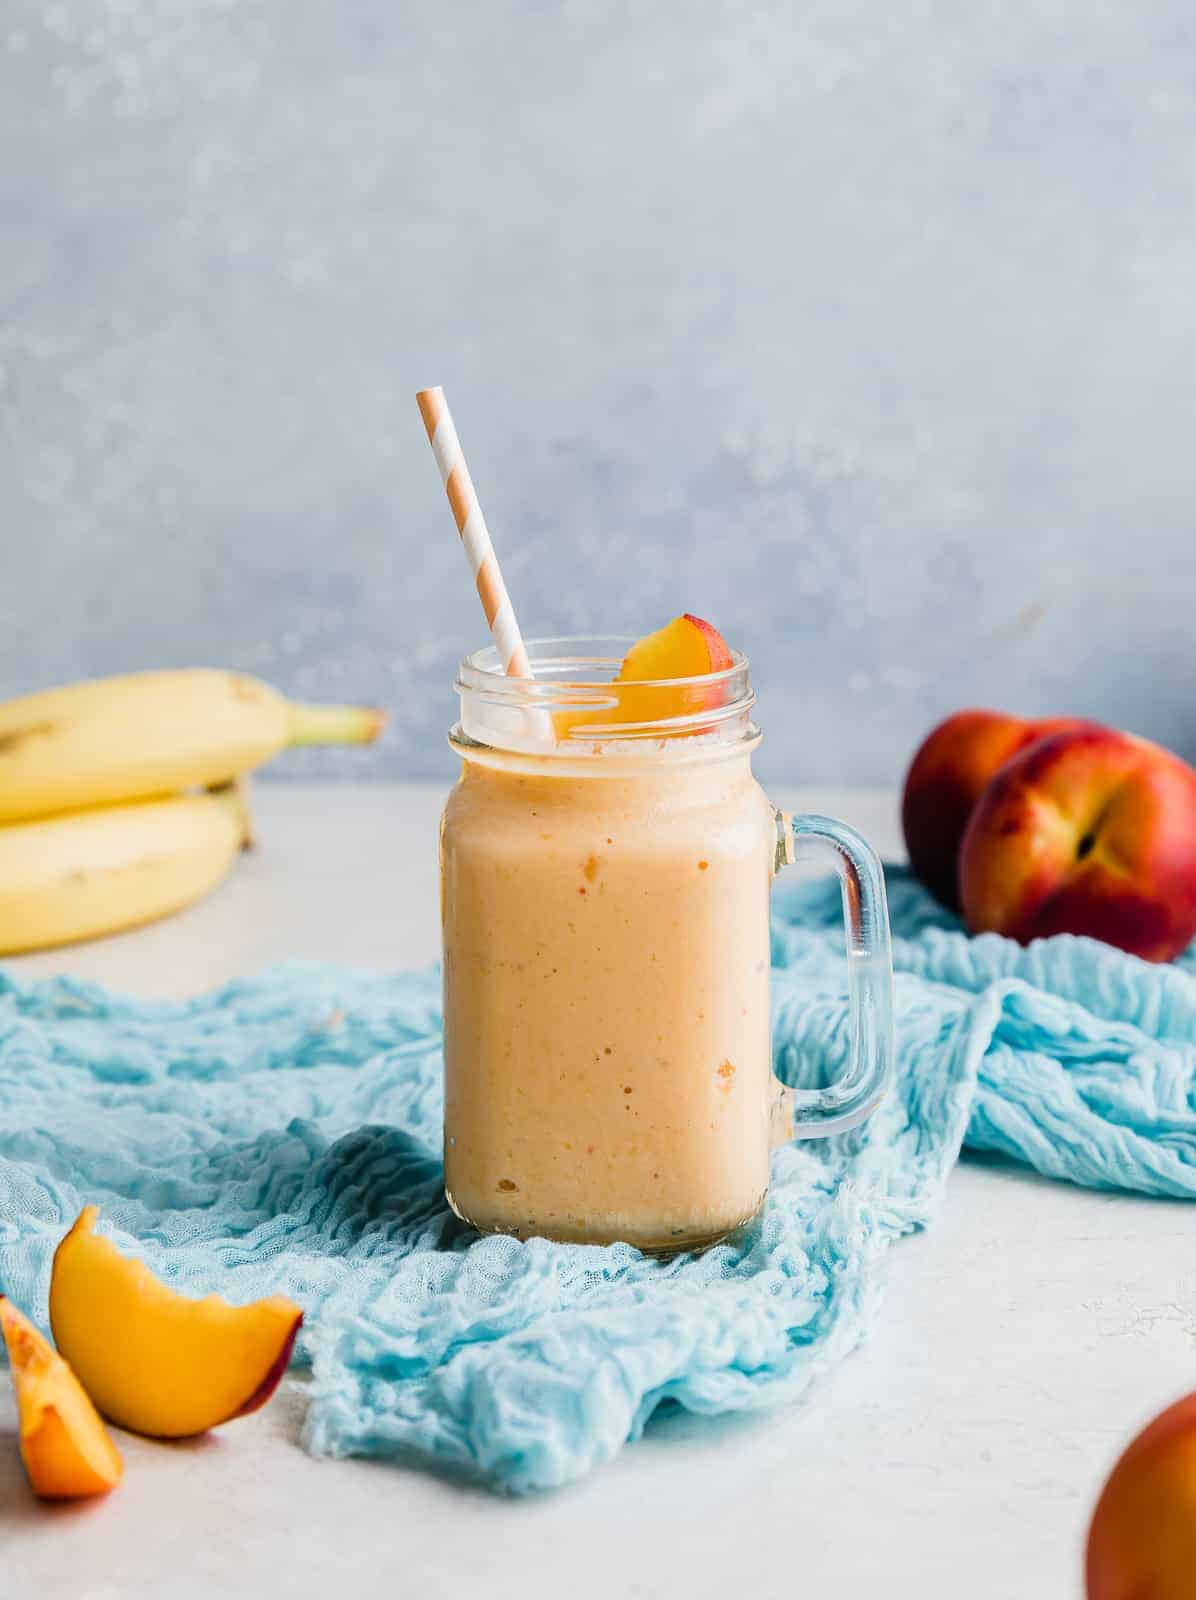 A banana peach smoothie in a glass cup with fresh peaches and bananas in the background.